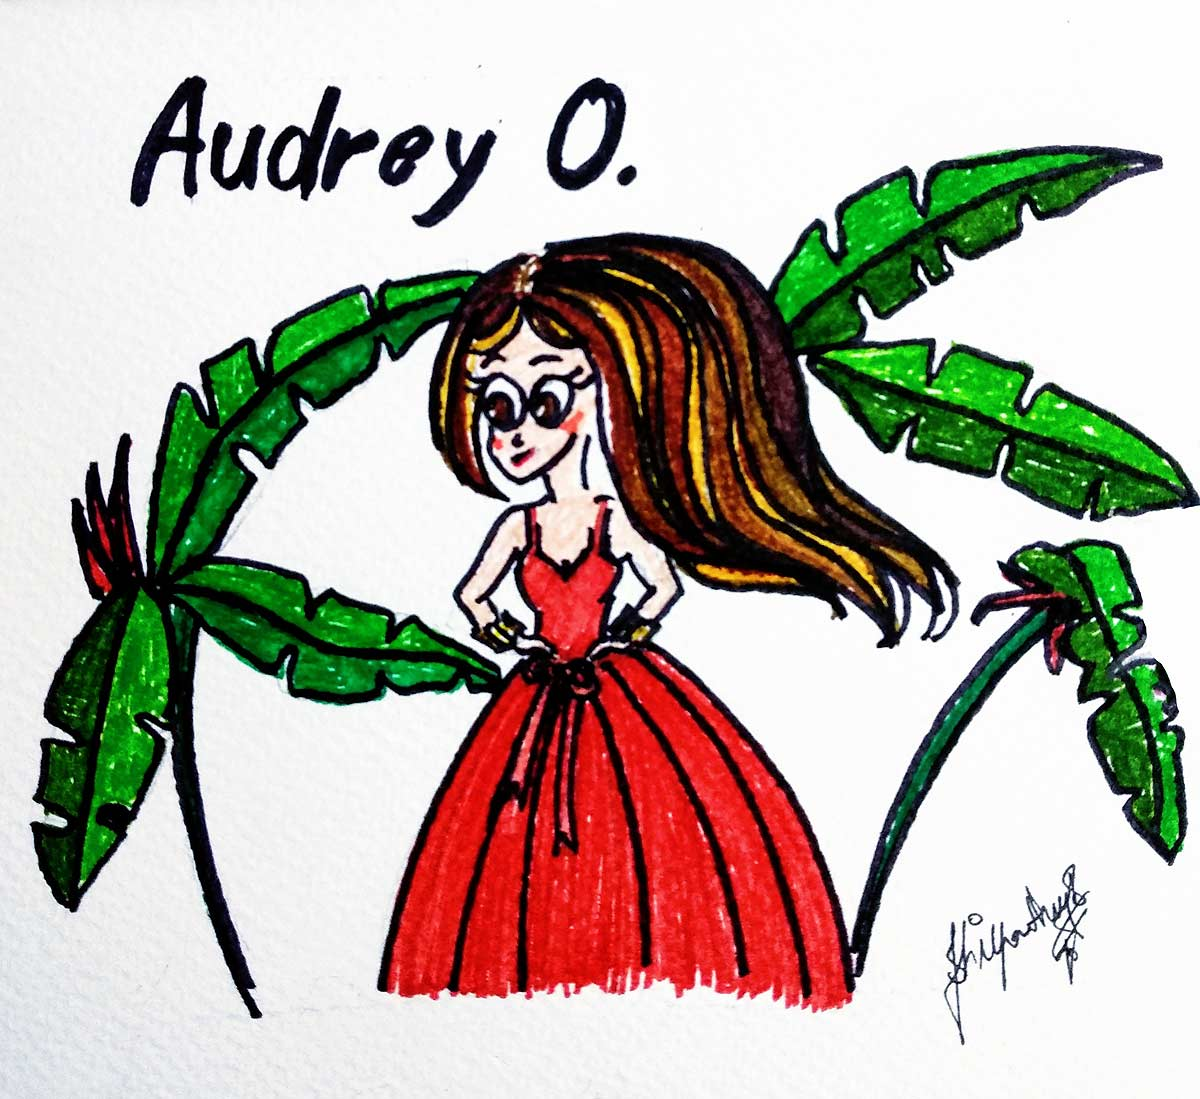 audrey-o-comics-cartoon-red-gown-party-fashion-girl-drawing